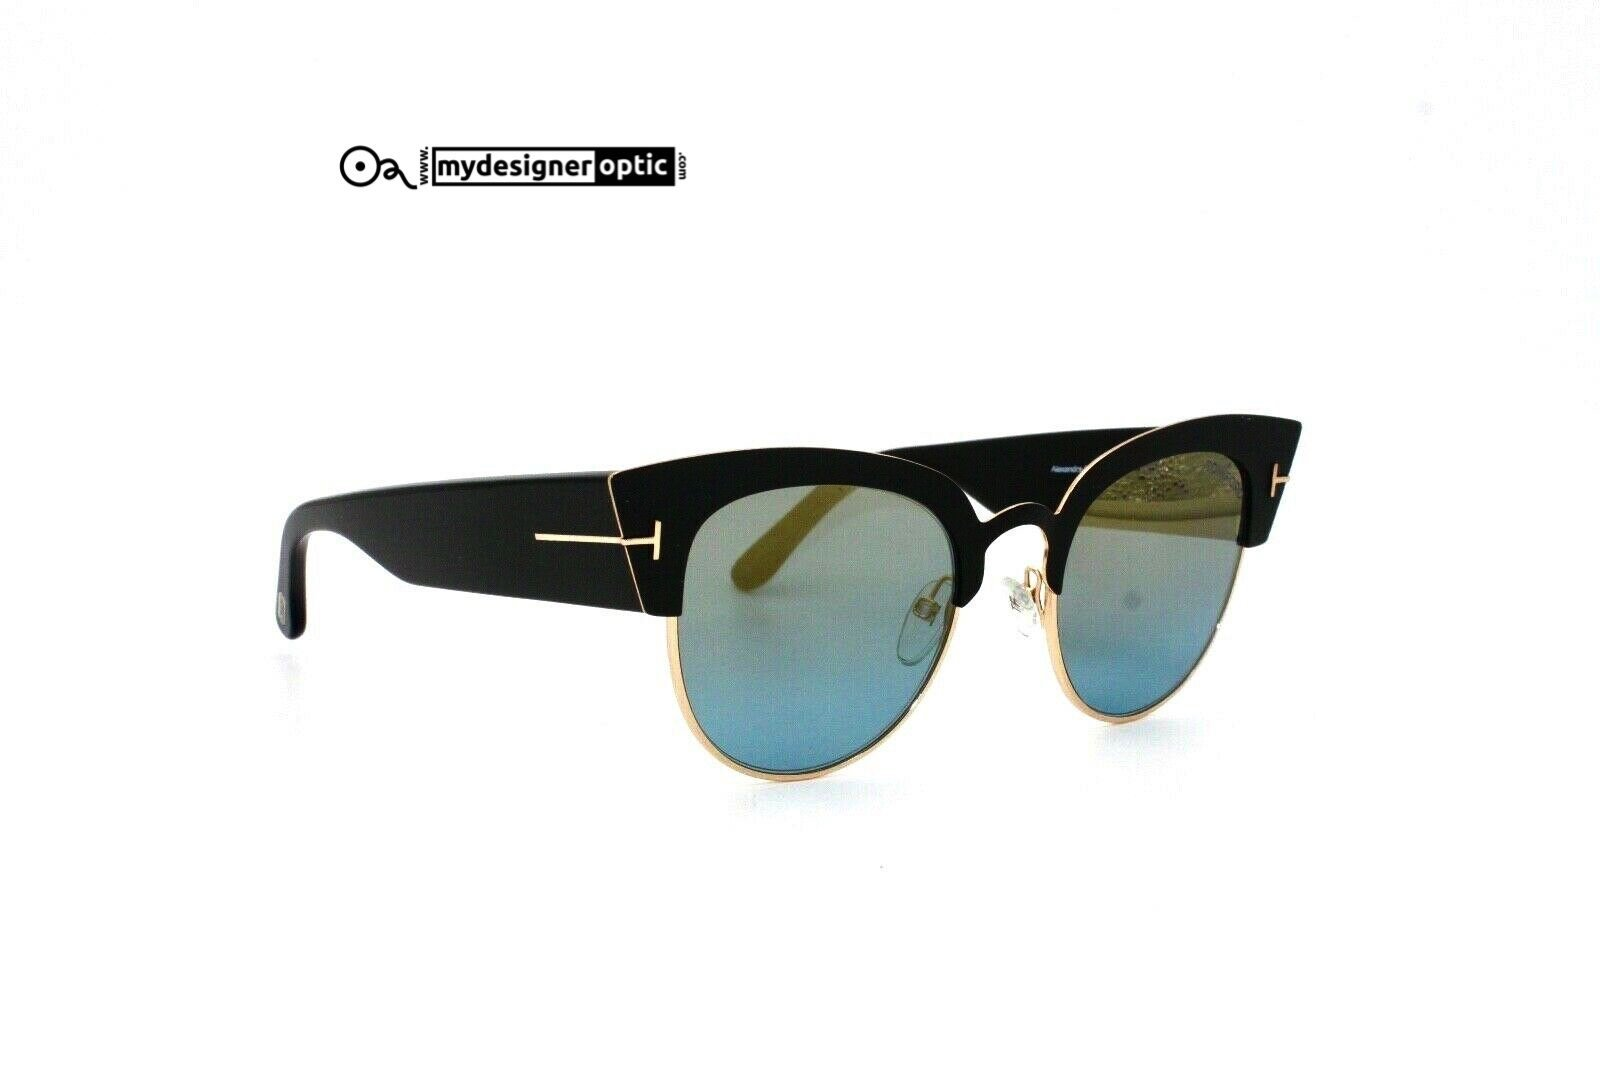 Tom Ford Sunglasses Alexandra-02 TF607 05X 51-21 145 .2 2-1.8 Made in Italy - Mydesigneroptic